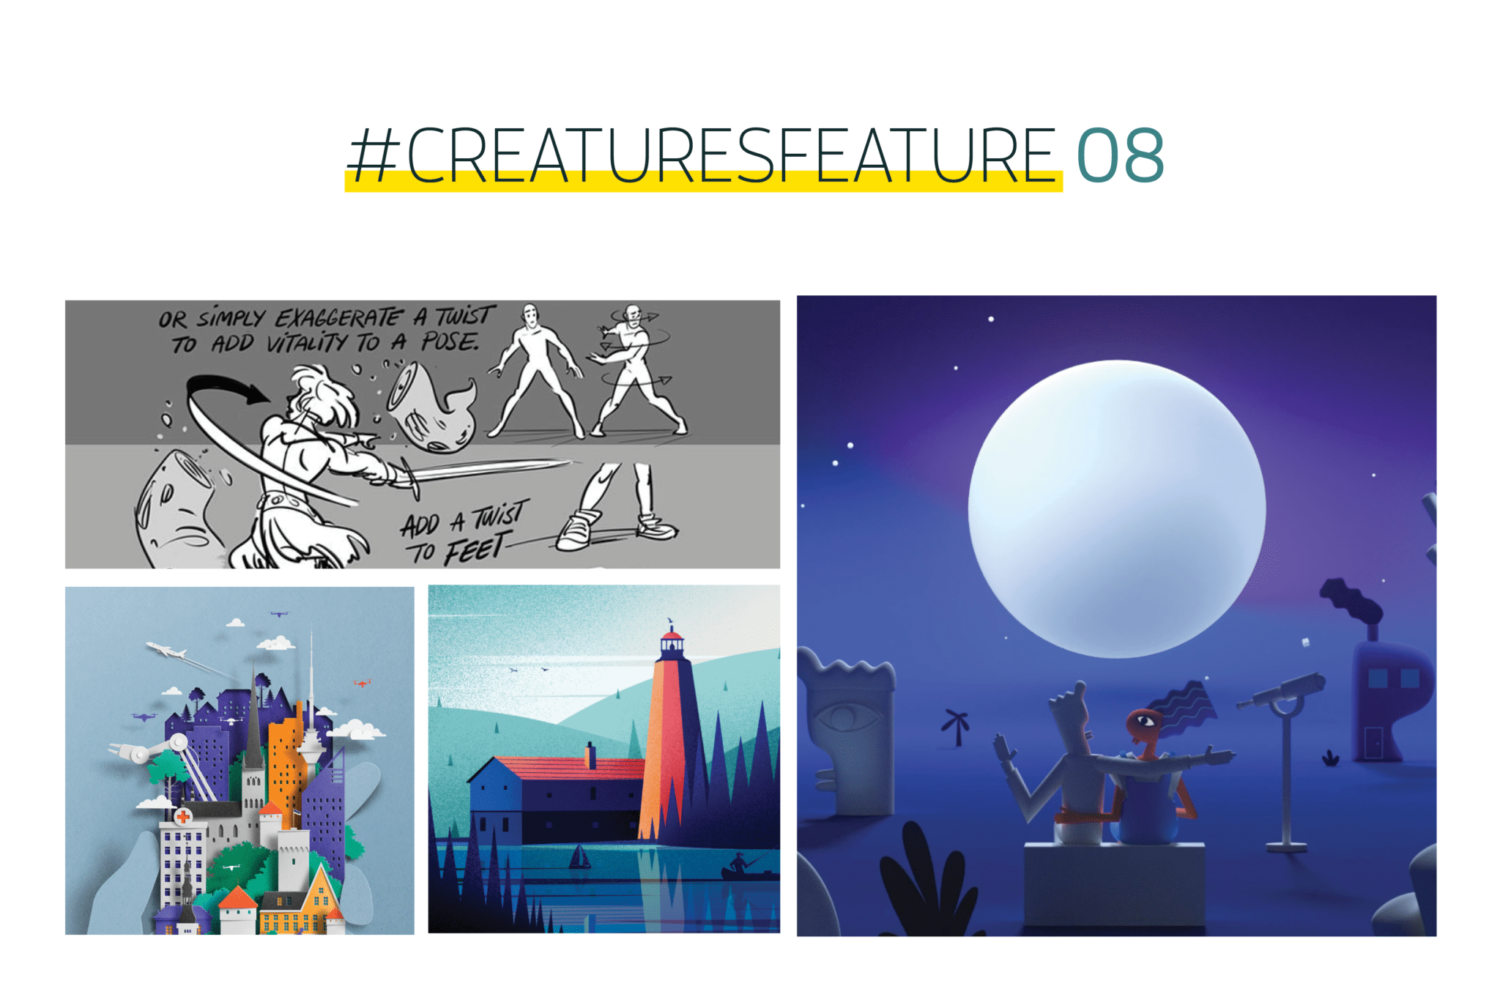 Creatures Feature 08